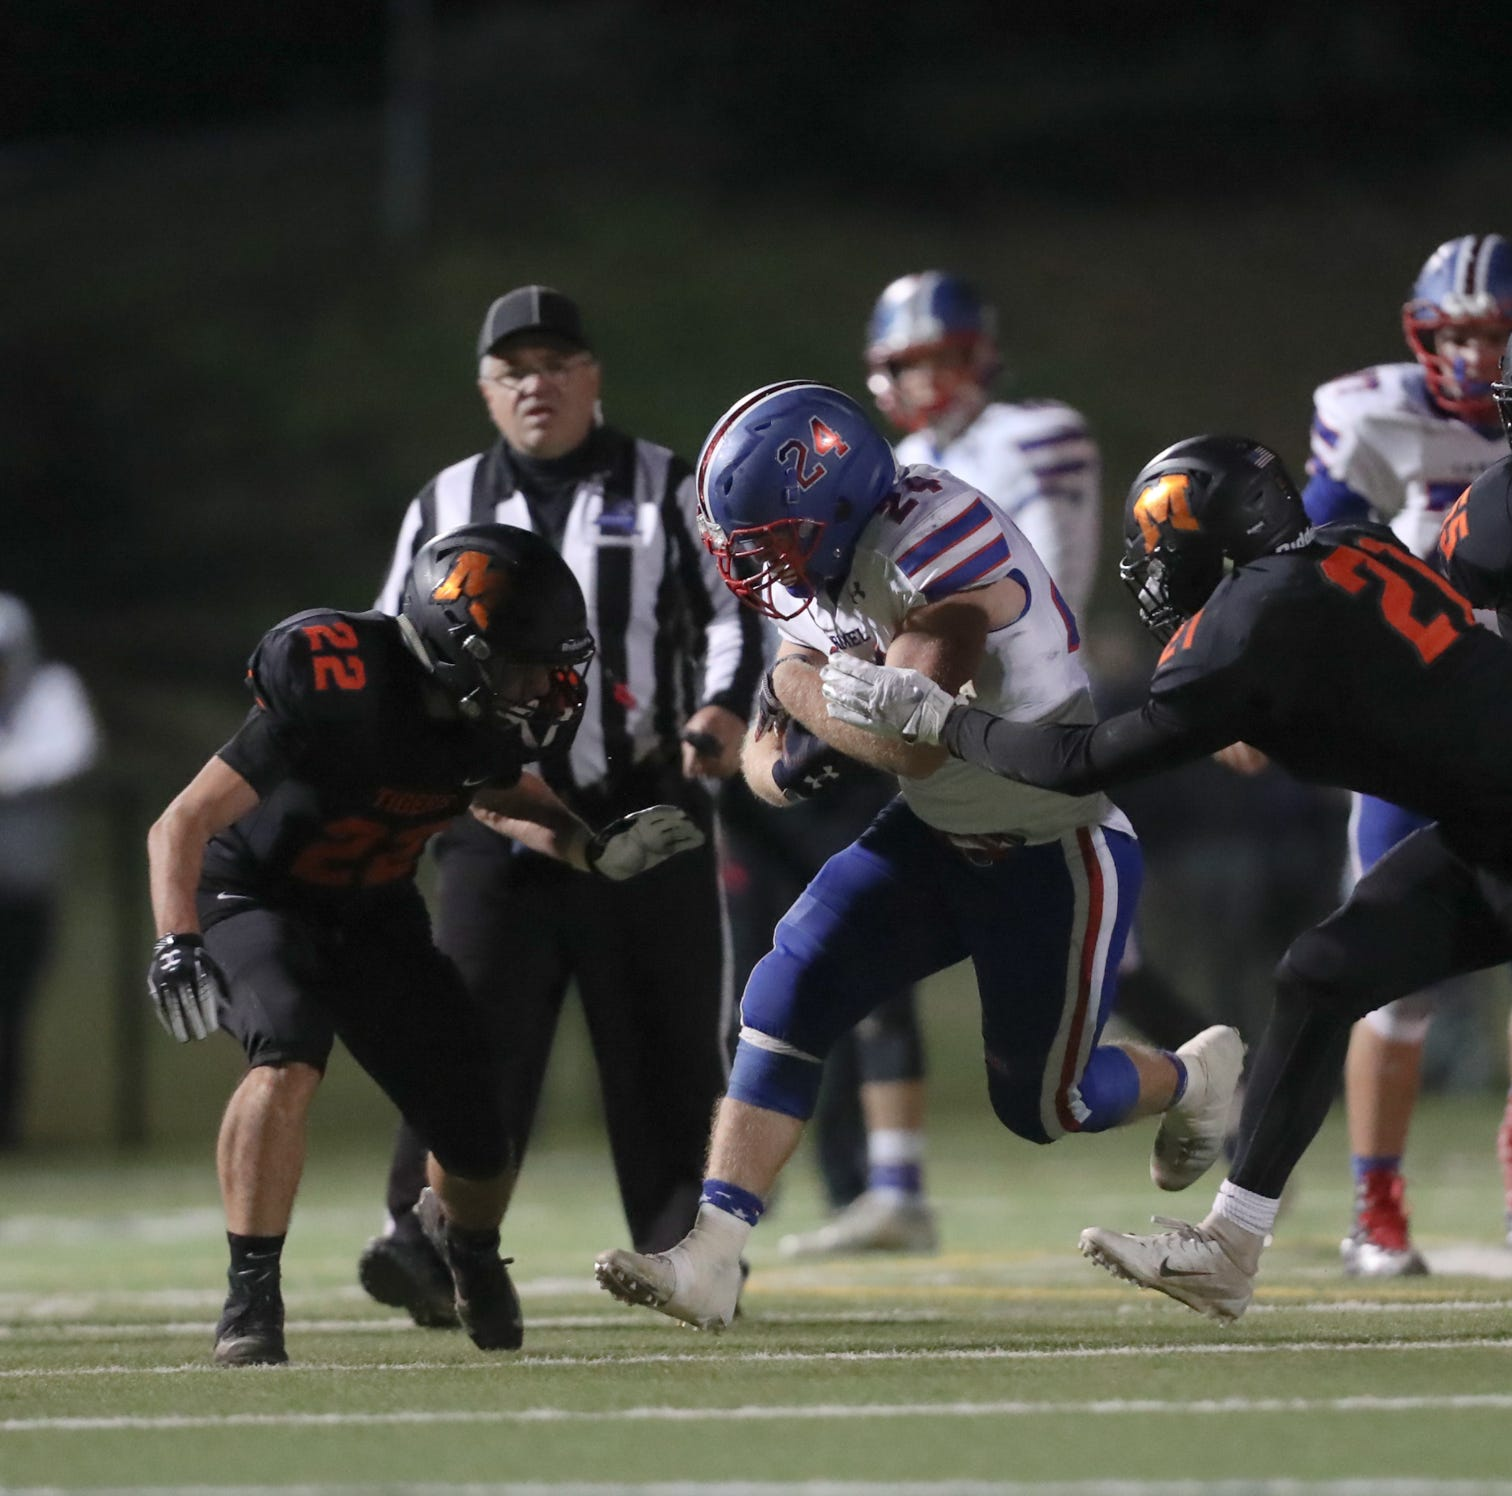 Football: Sam Duke, Carmel overpower Mamaroneck to advance